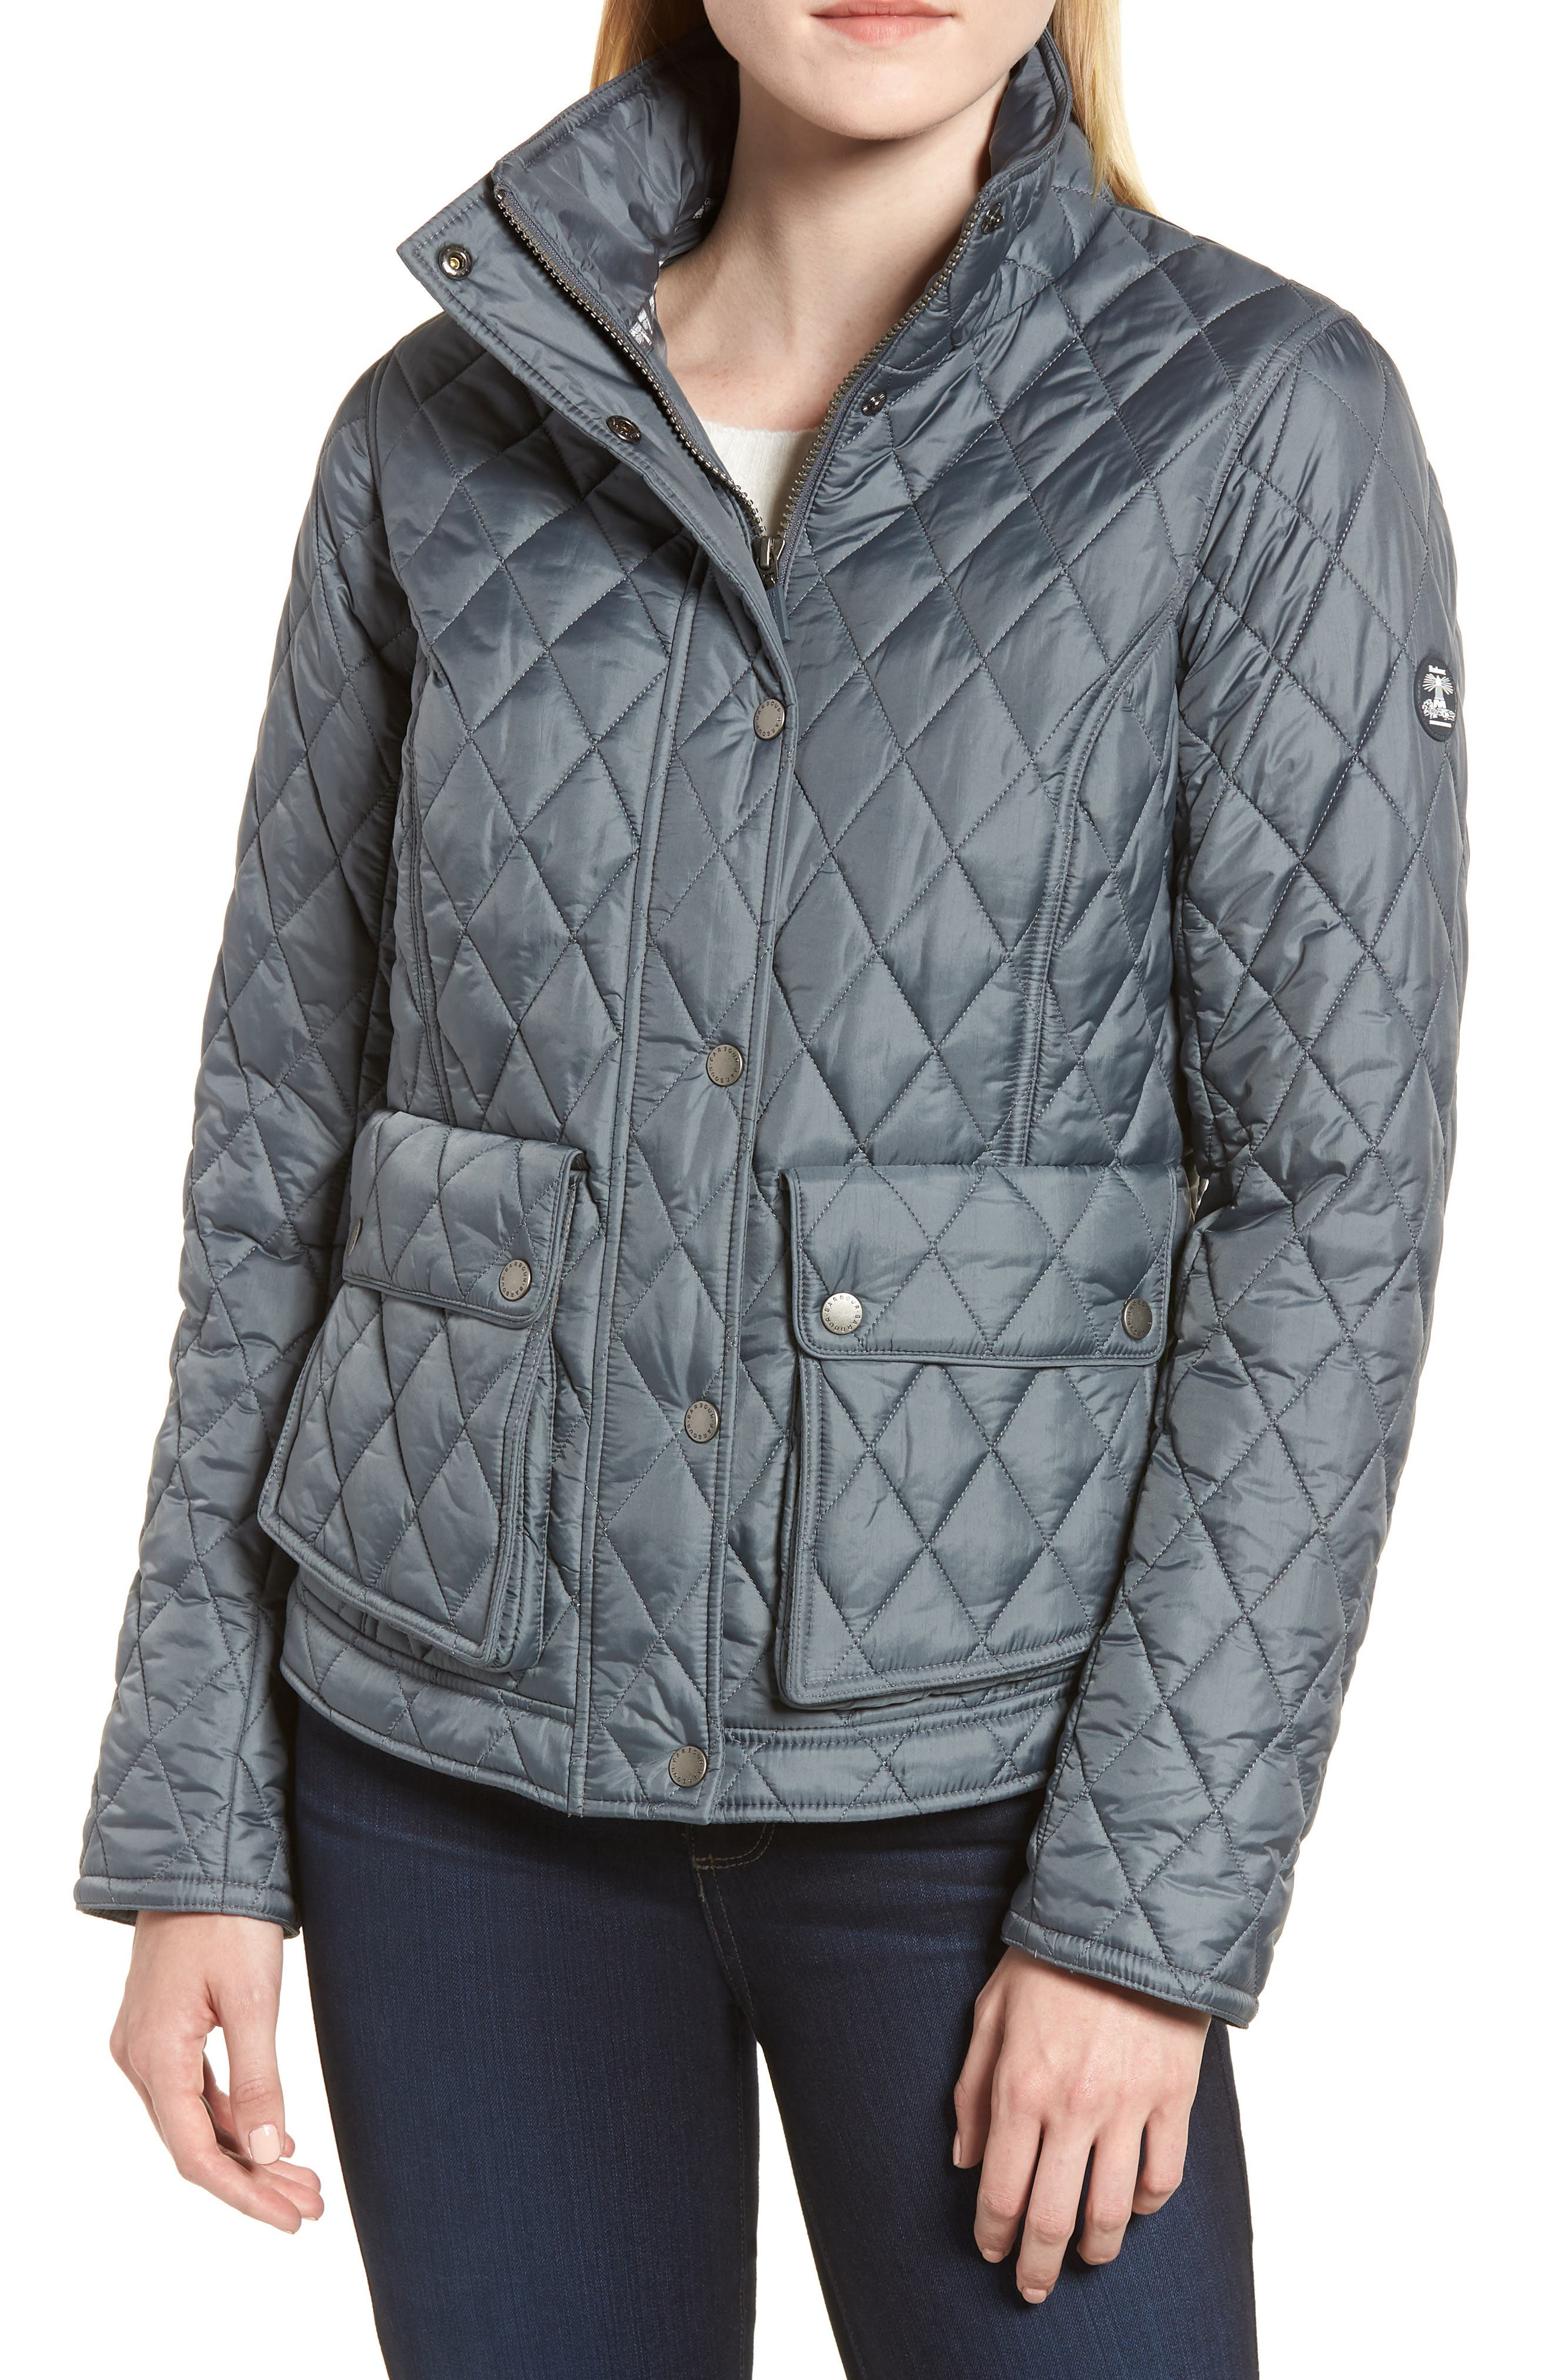 Fairway Quilted Jacket,                             Alternate thumbnail 4, color,                             Washed Charcoal